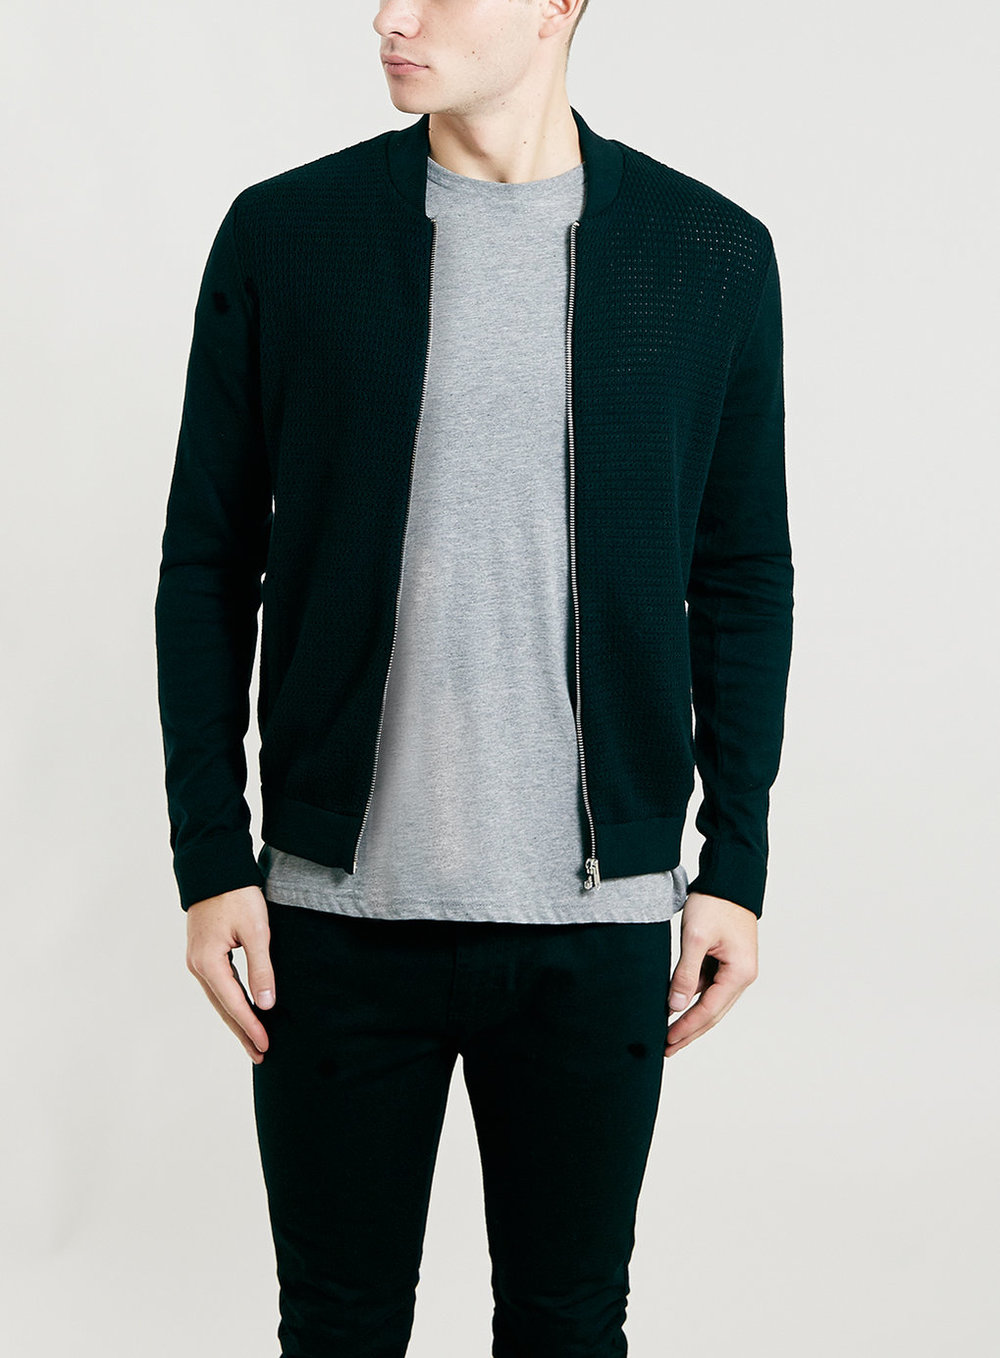 Black Rib Bomber Jacket , was $70, now $56